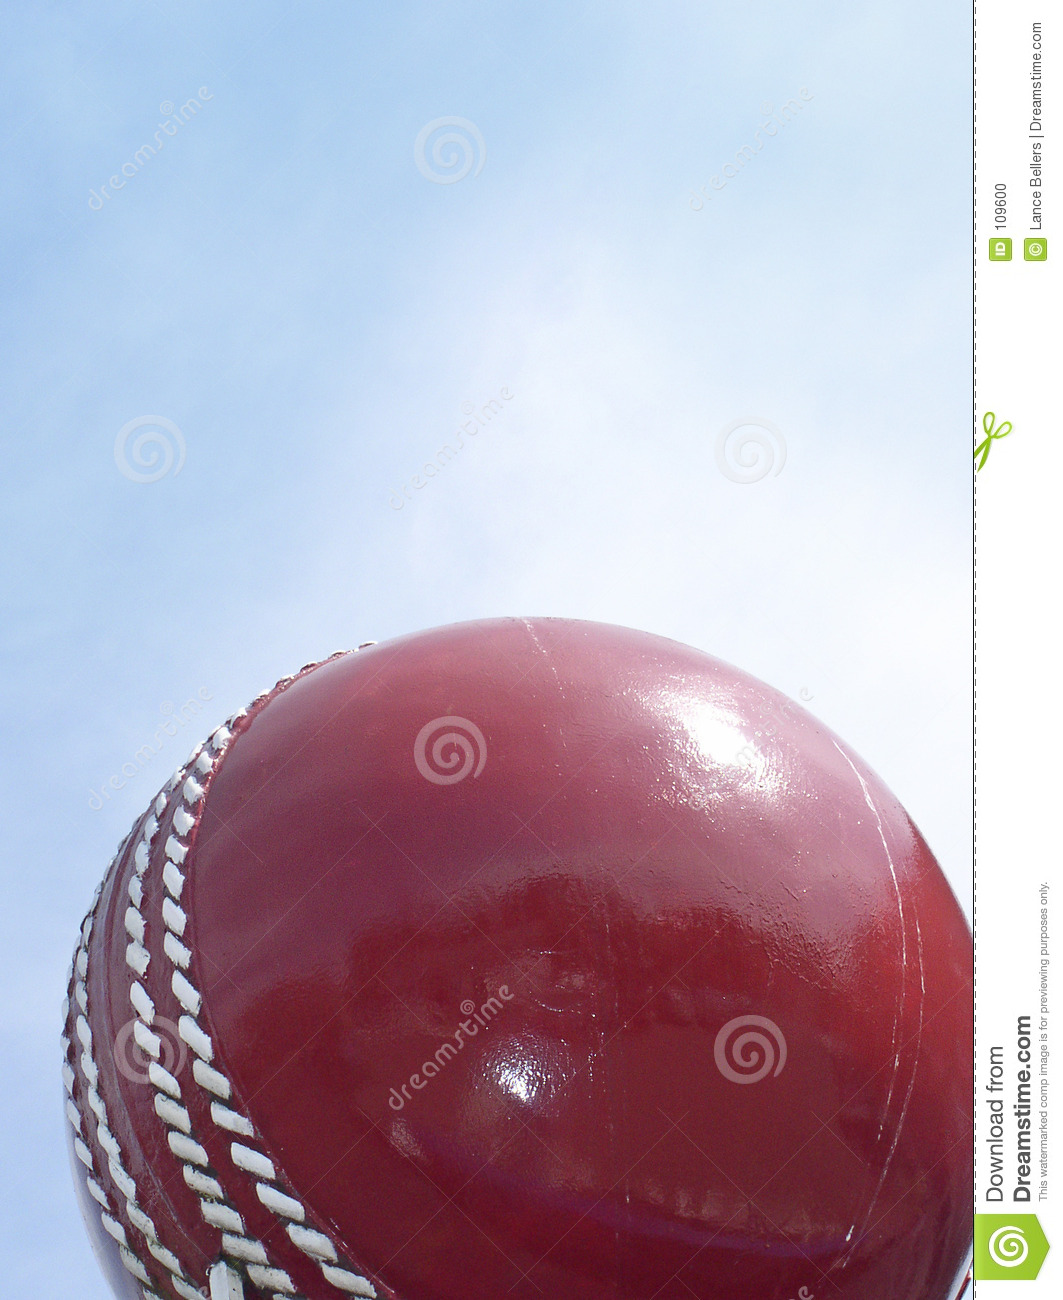 Download Cricket ball and sky stock photo. Image of bowling, leather - 109600